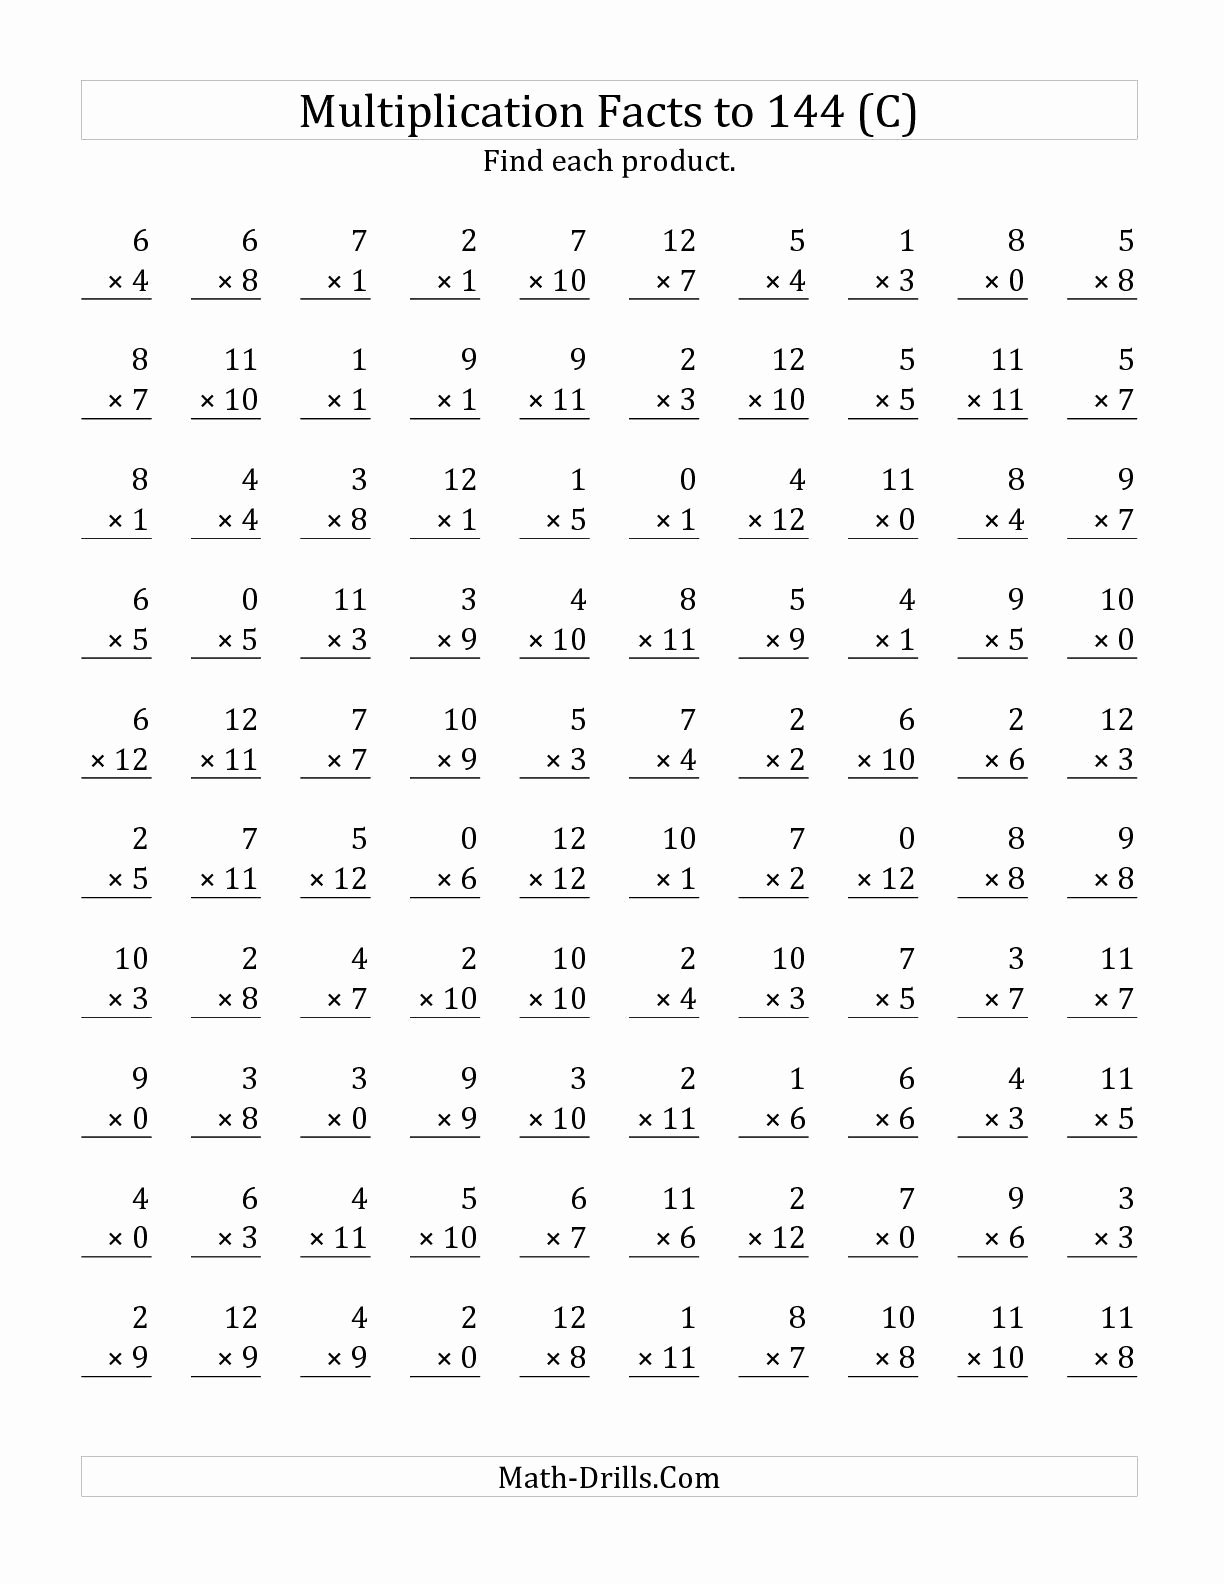 Multiplication Worksheets Grade 4 Math Drills Lovely the Multiplication Facts to 144 Including Zeros C Math Wor